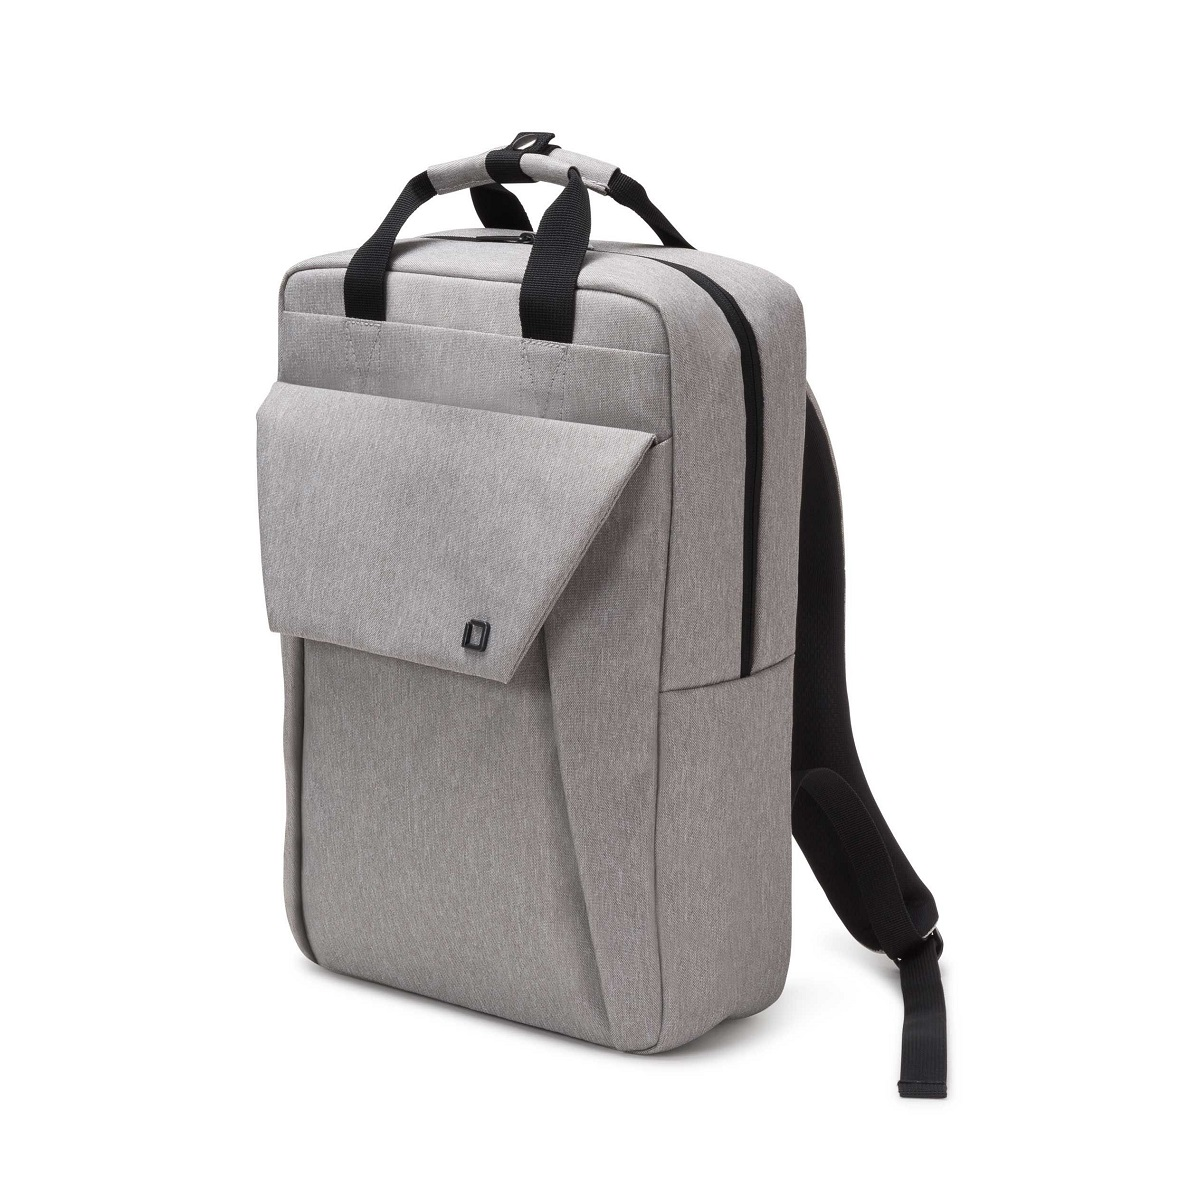 D31525 Dicota Backpack EDGE 13-15.6 light grey